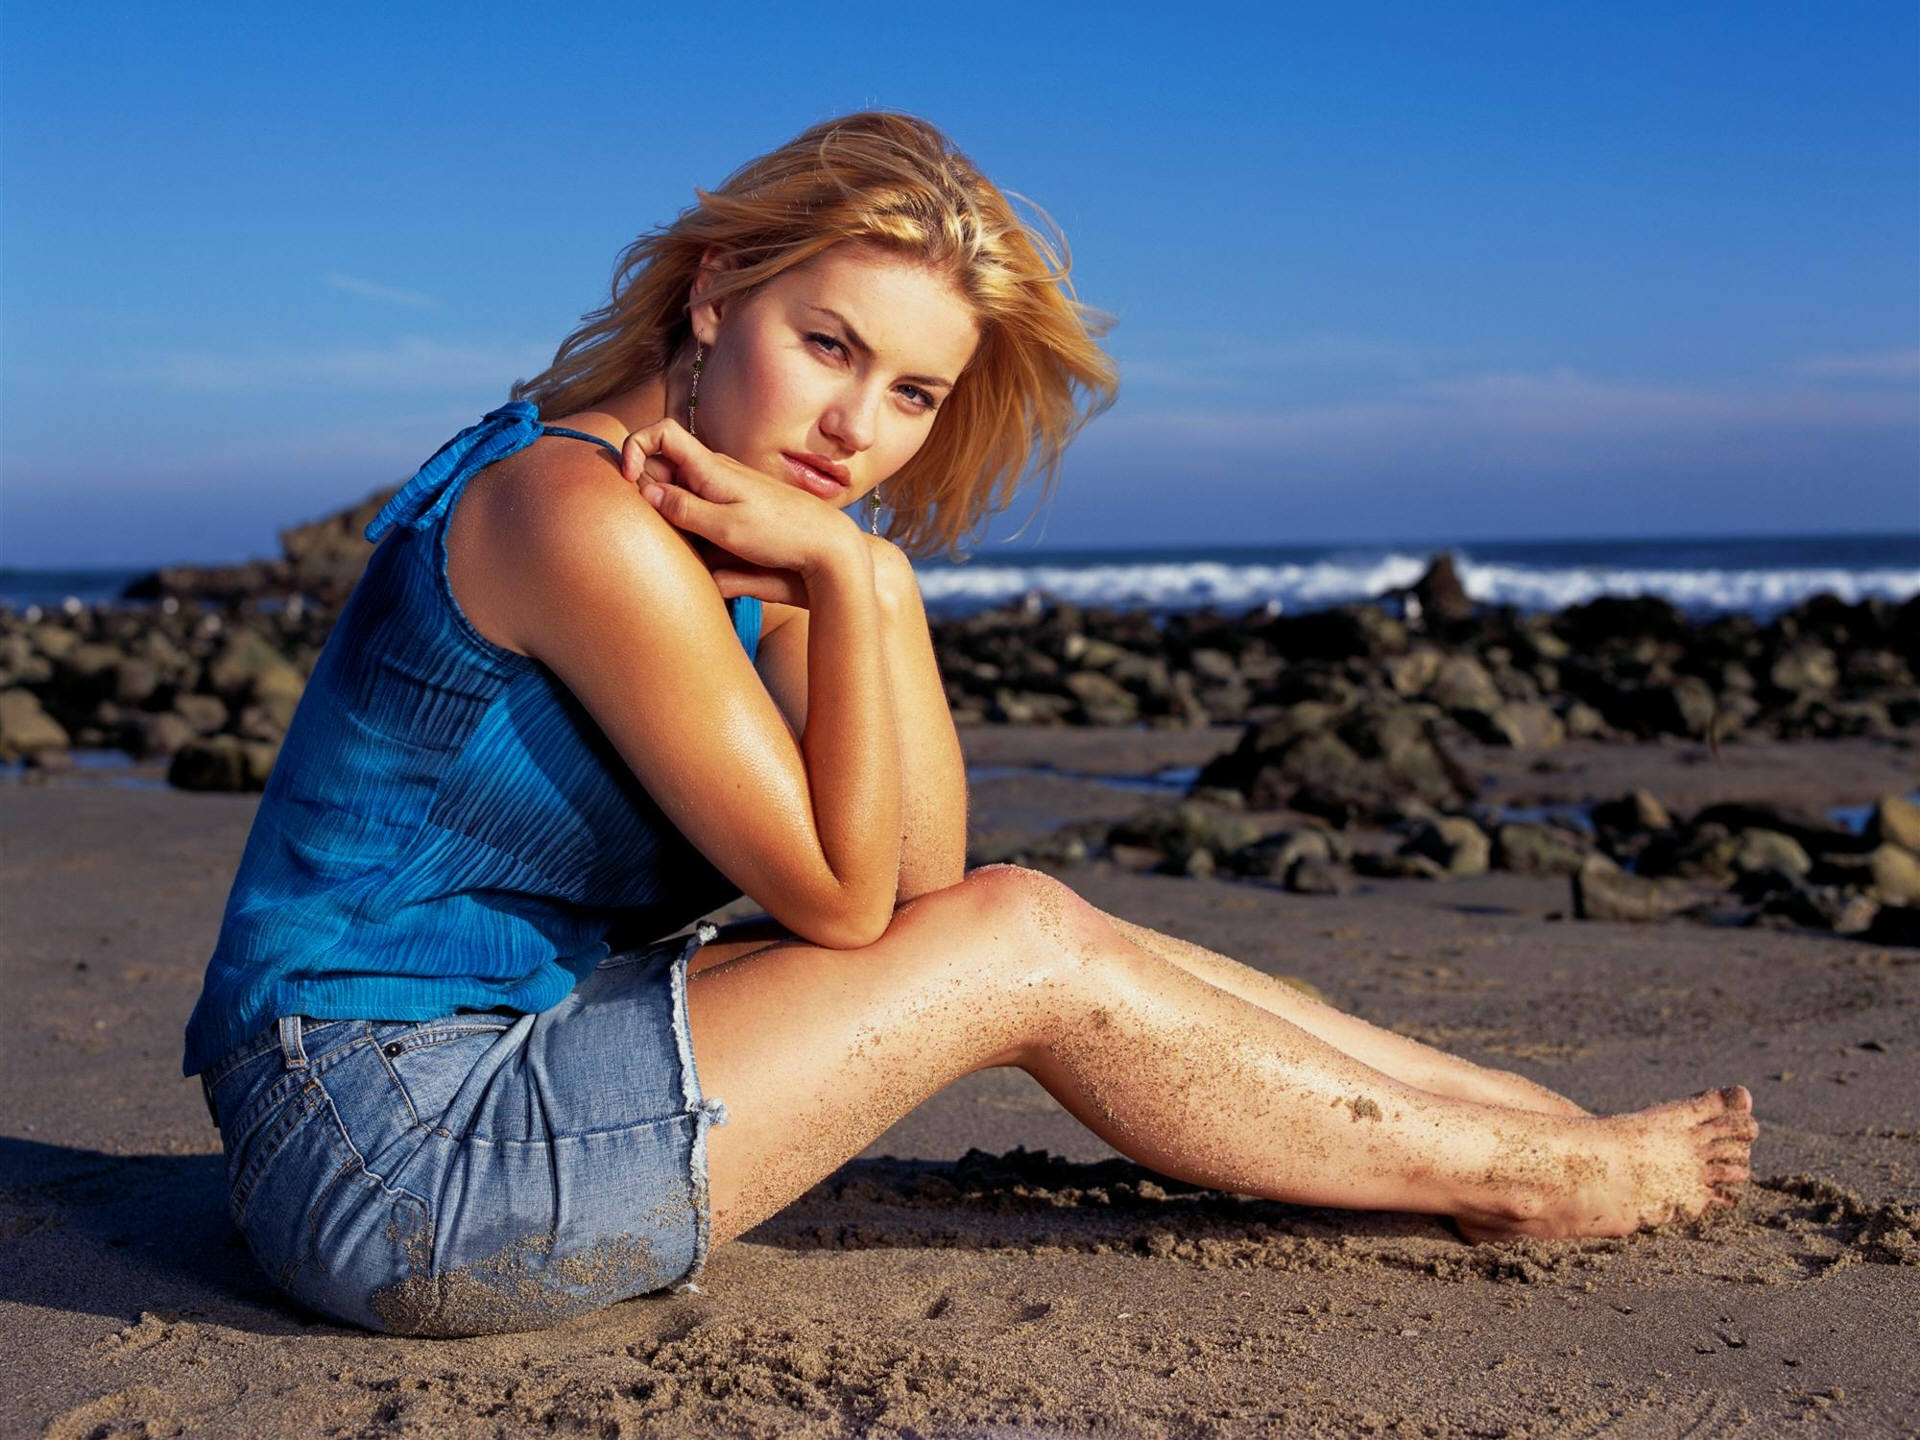 Elisha Cuthbert Hd Wallpapers: Elisha Cuthbert Wallpapers Hd A2